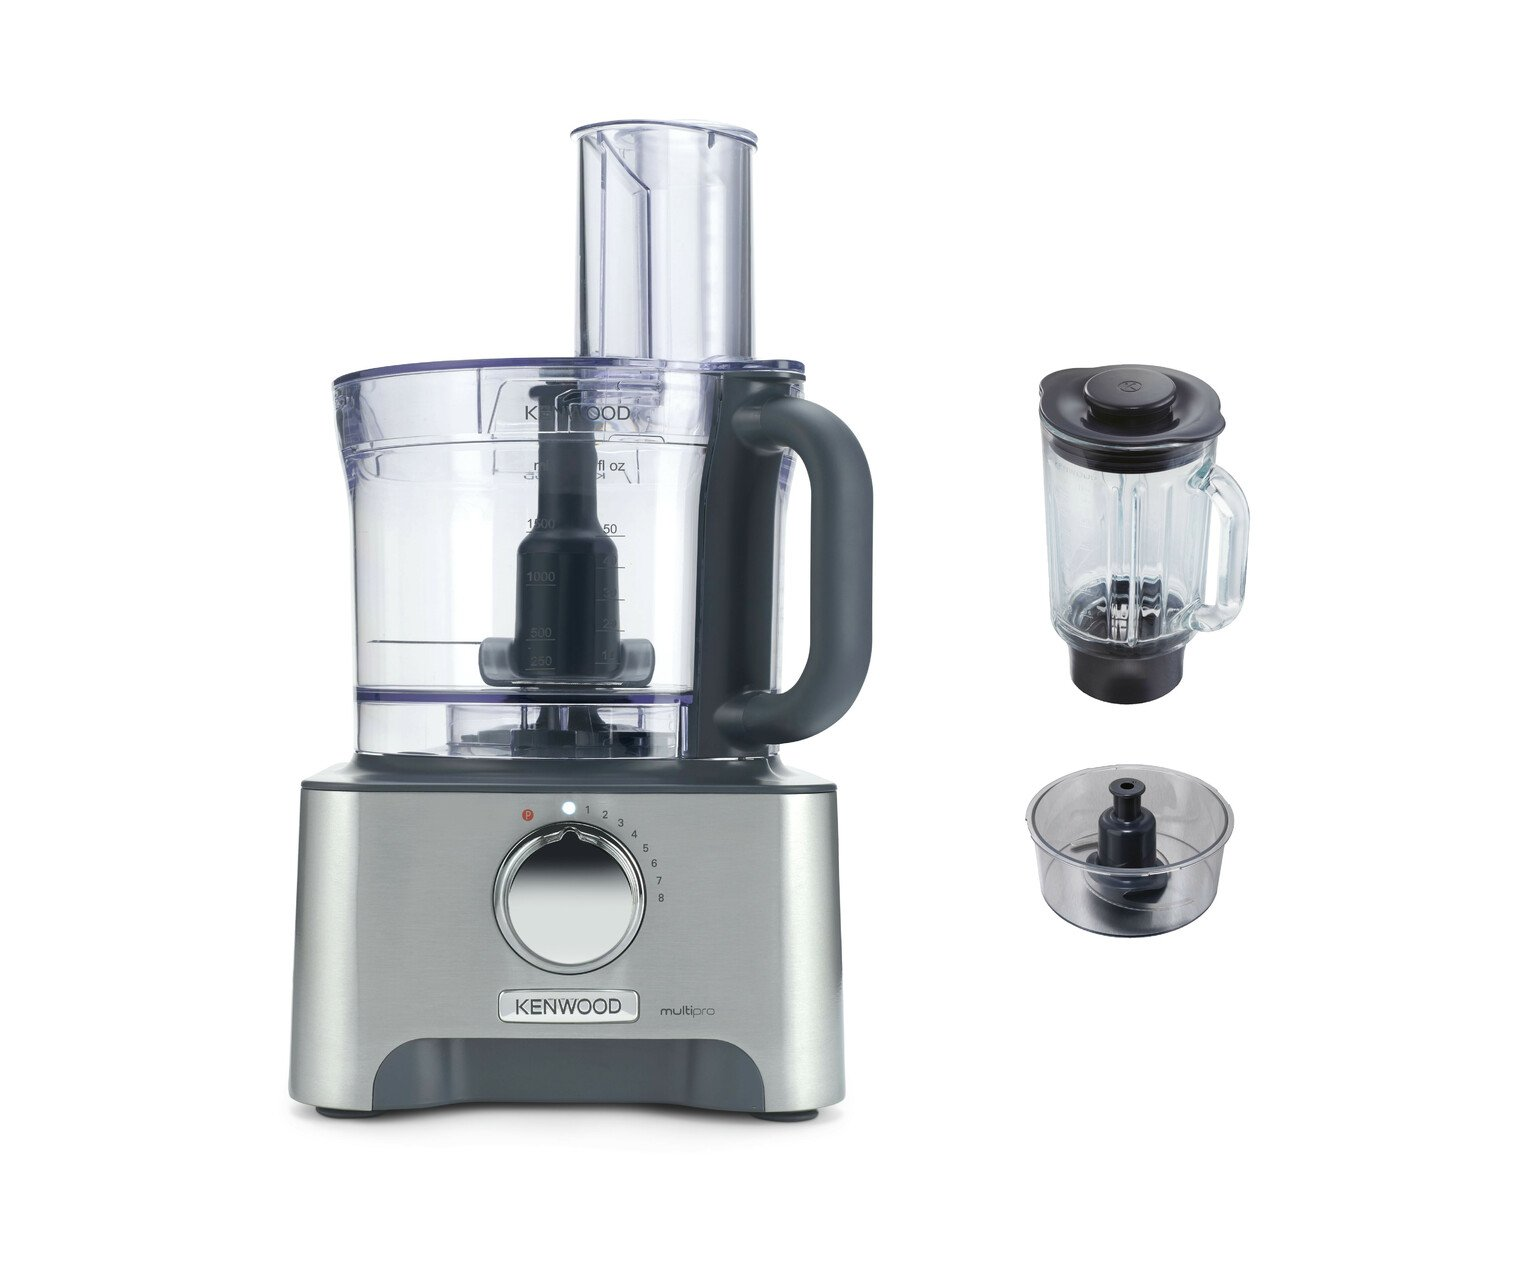 Kenwood - FDM781BA Multipro Classic Food Processor